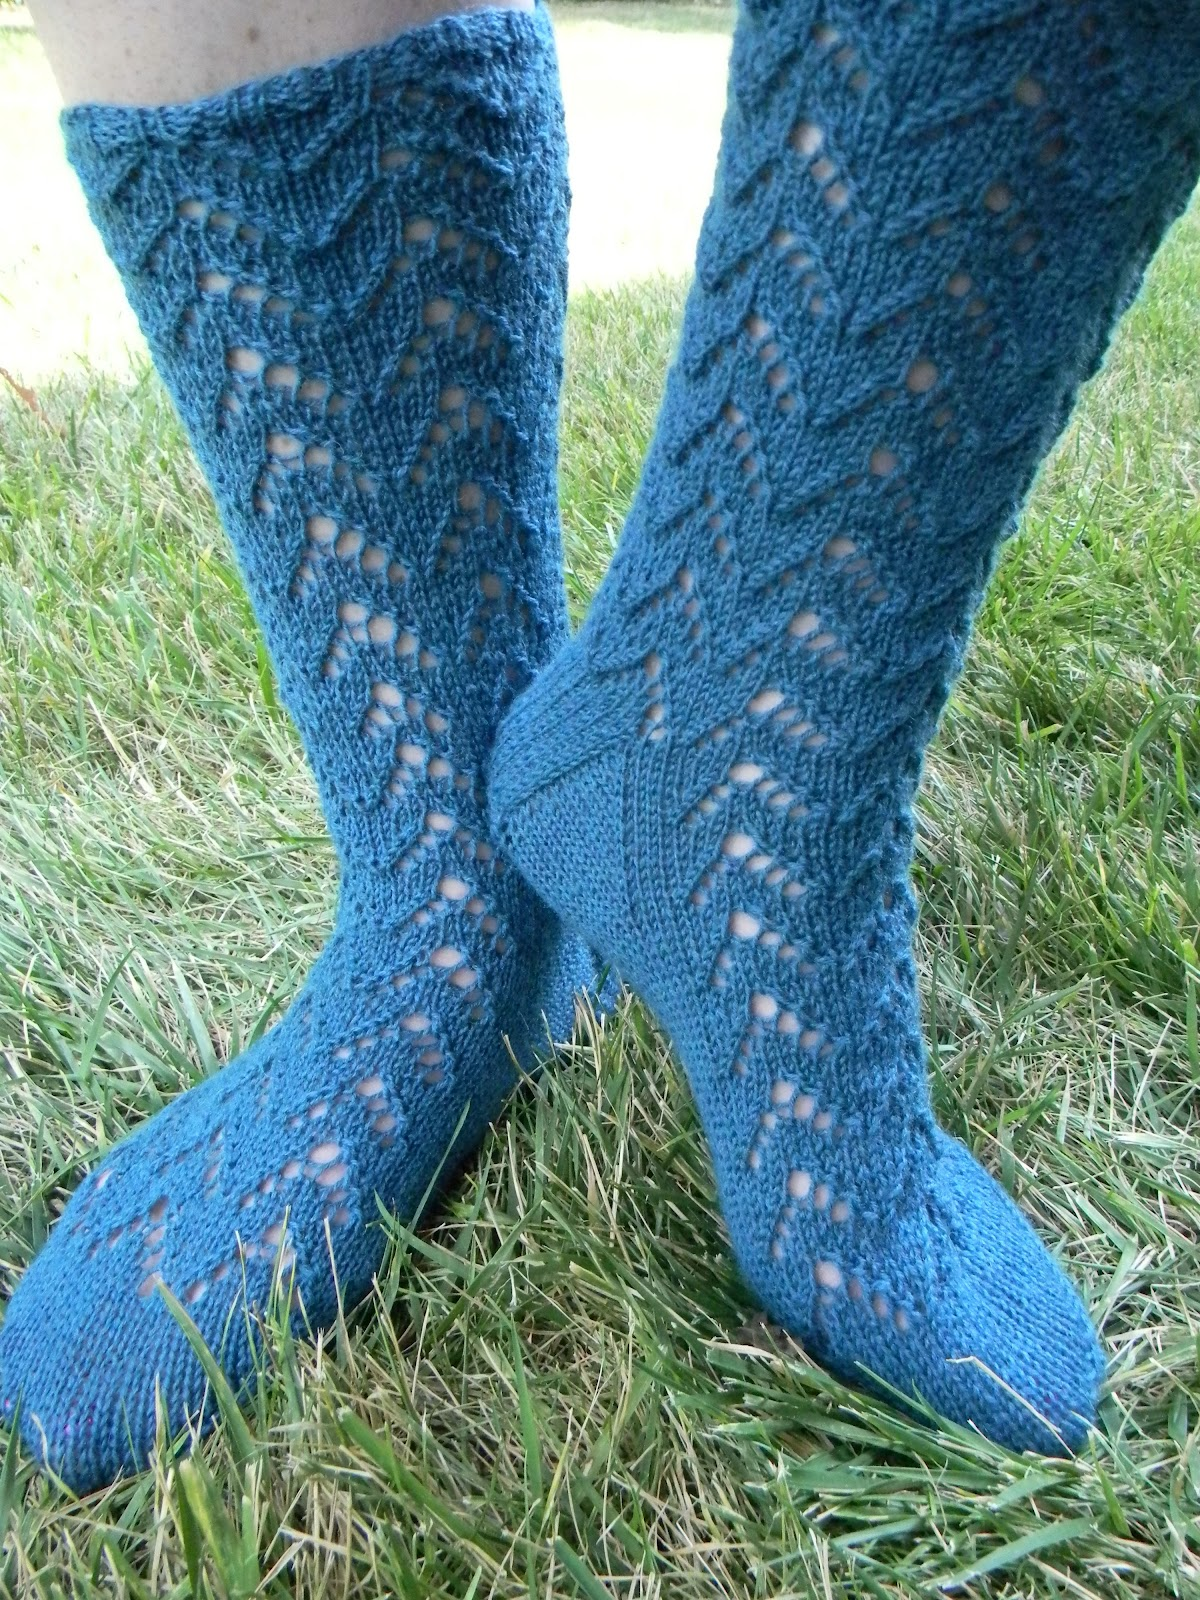 Sock Knitting Pattern : Kelly Darke - Fine Art: Sock knitting pattern available through ...